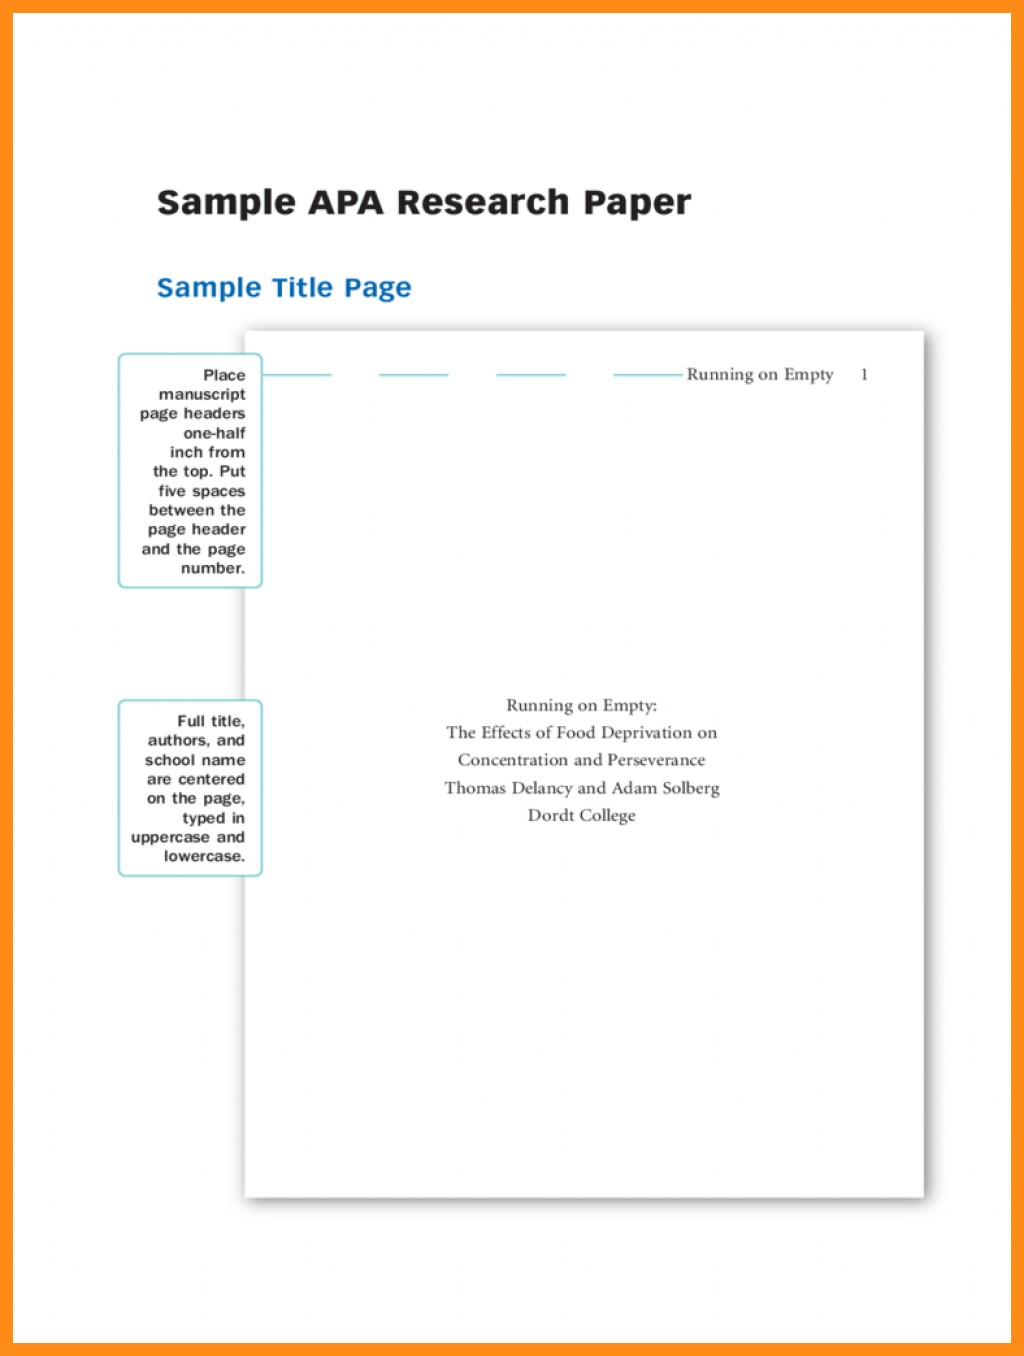 006 Research Paperver Page Apa Samples Of Papers Format Title Sample Dolap Magnetband Excellent Paper Cover Layout Example Style Large